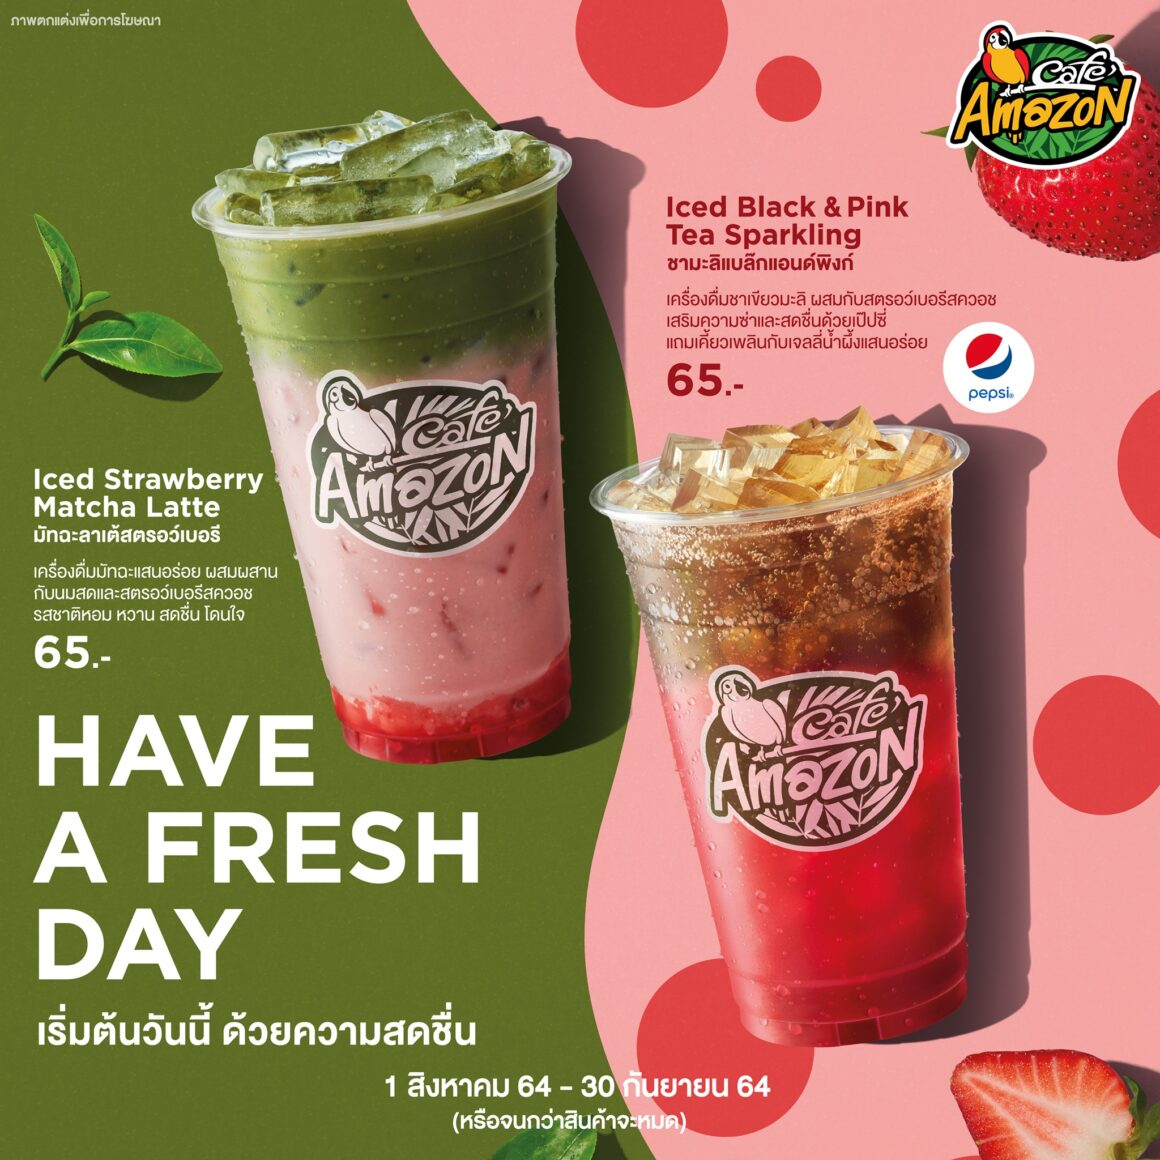 HAVE A FRESH DAY